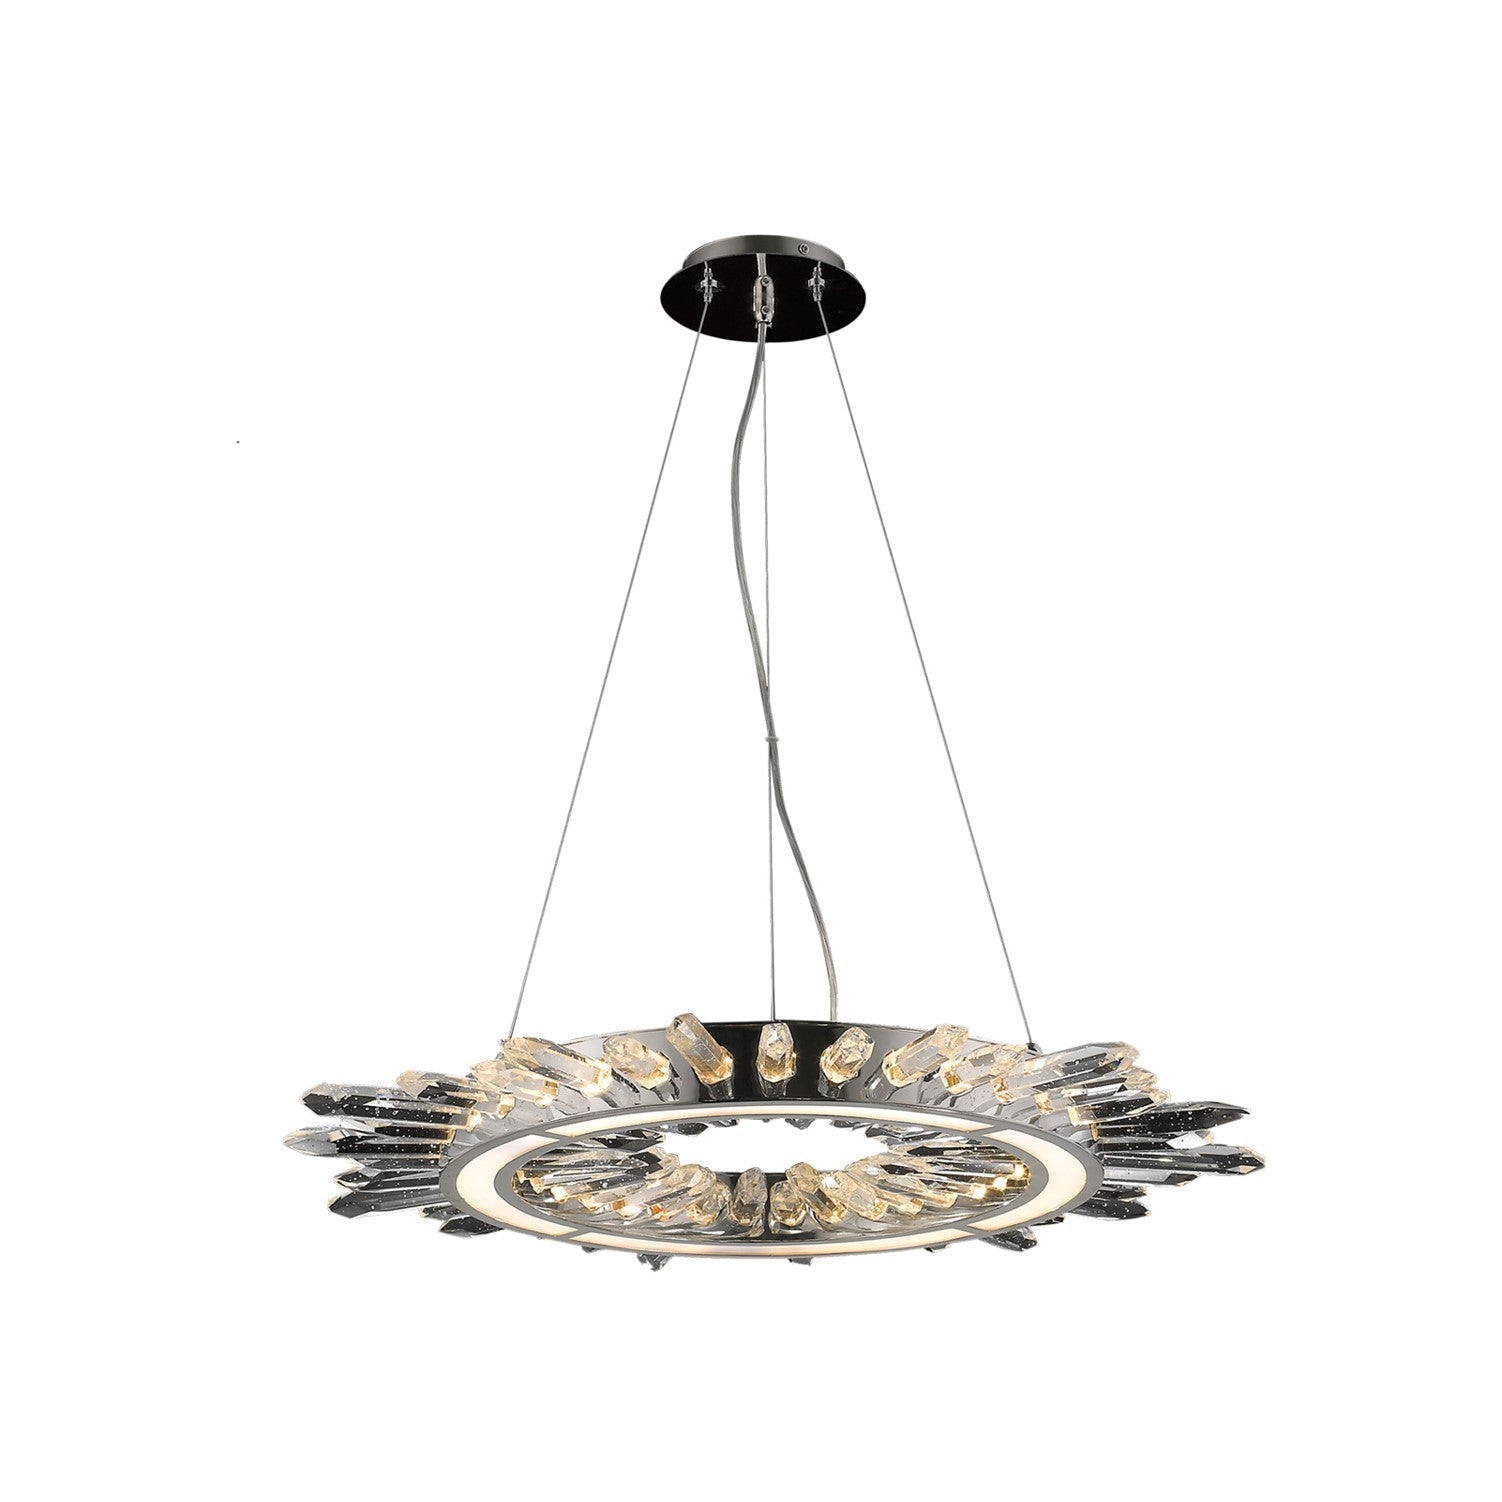 Avenue Lighting Aspen Crystal and Polished Nickel Modern LED Chandelier